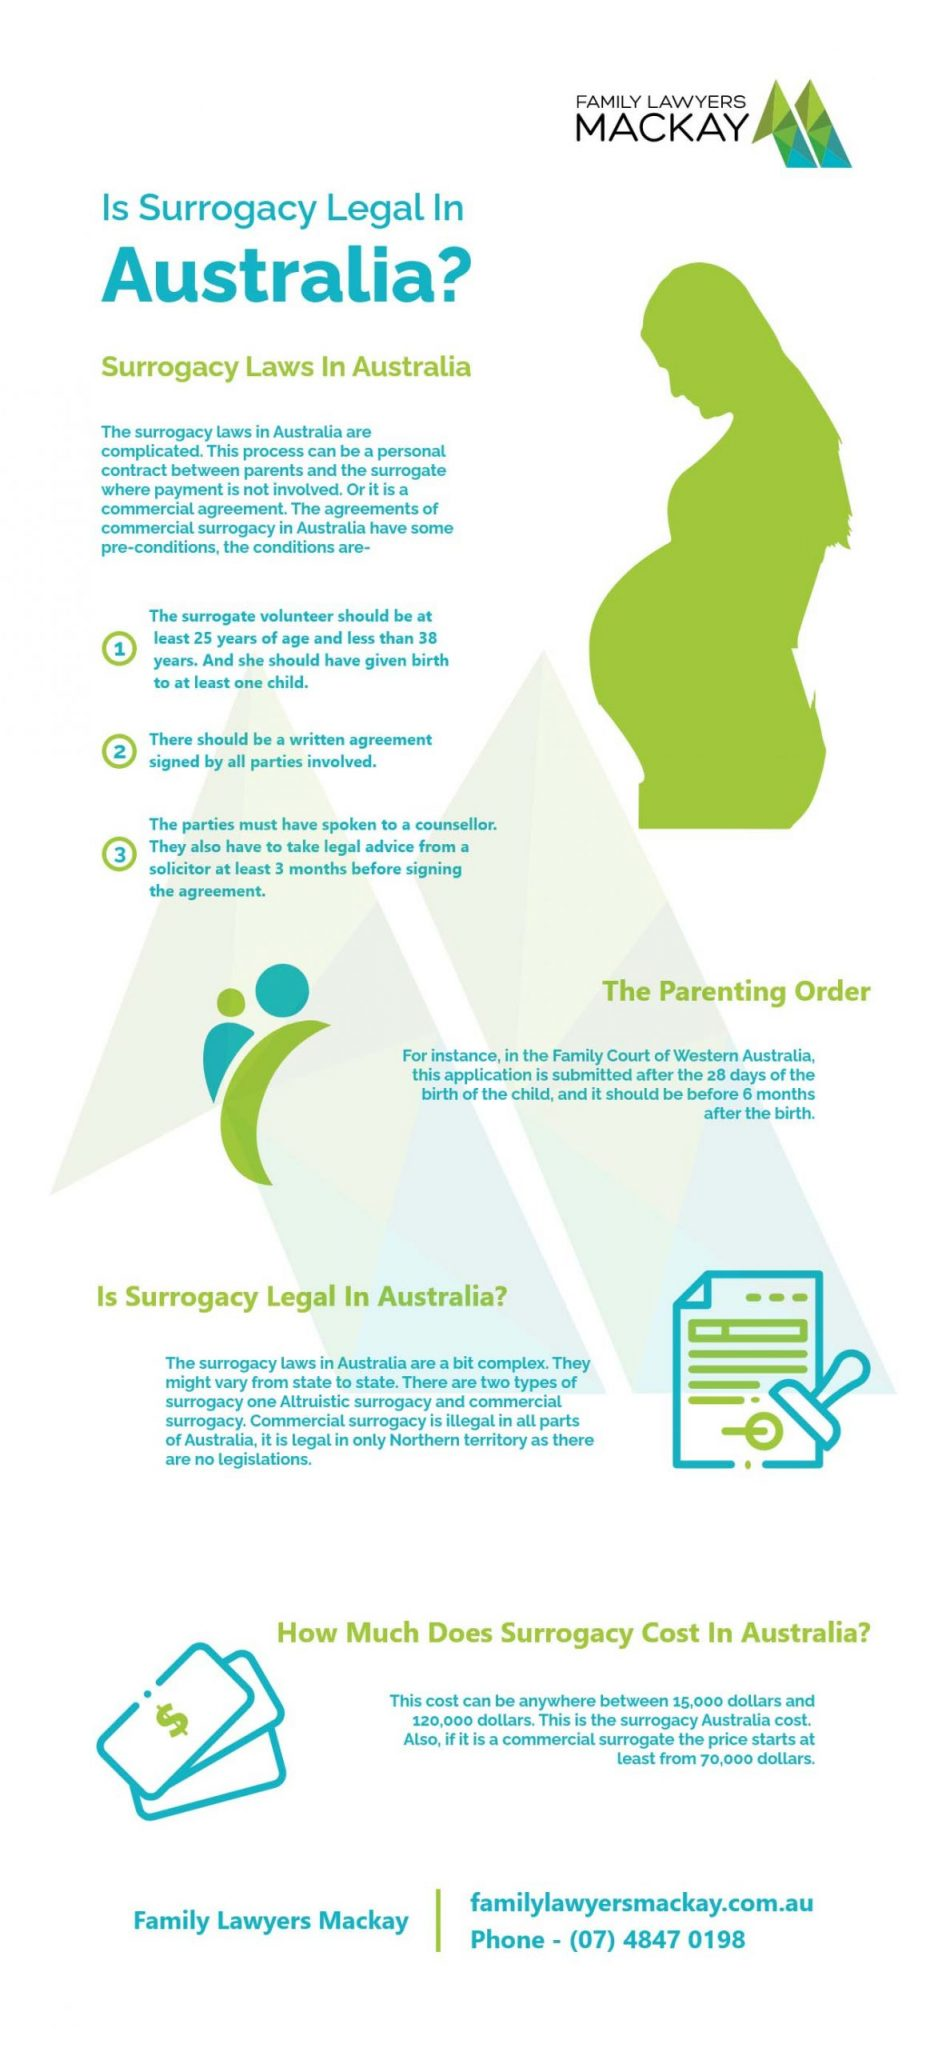 Surrogacy laws in Australia